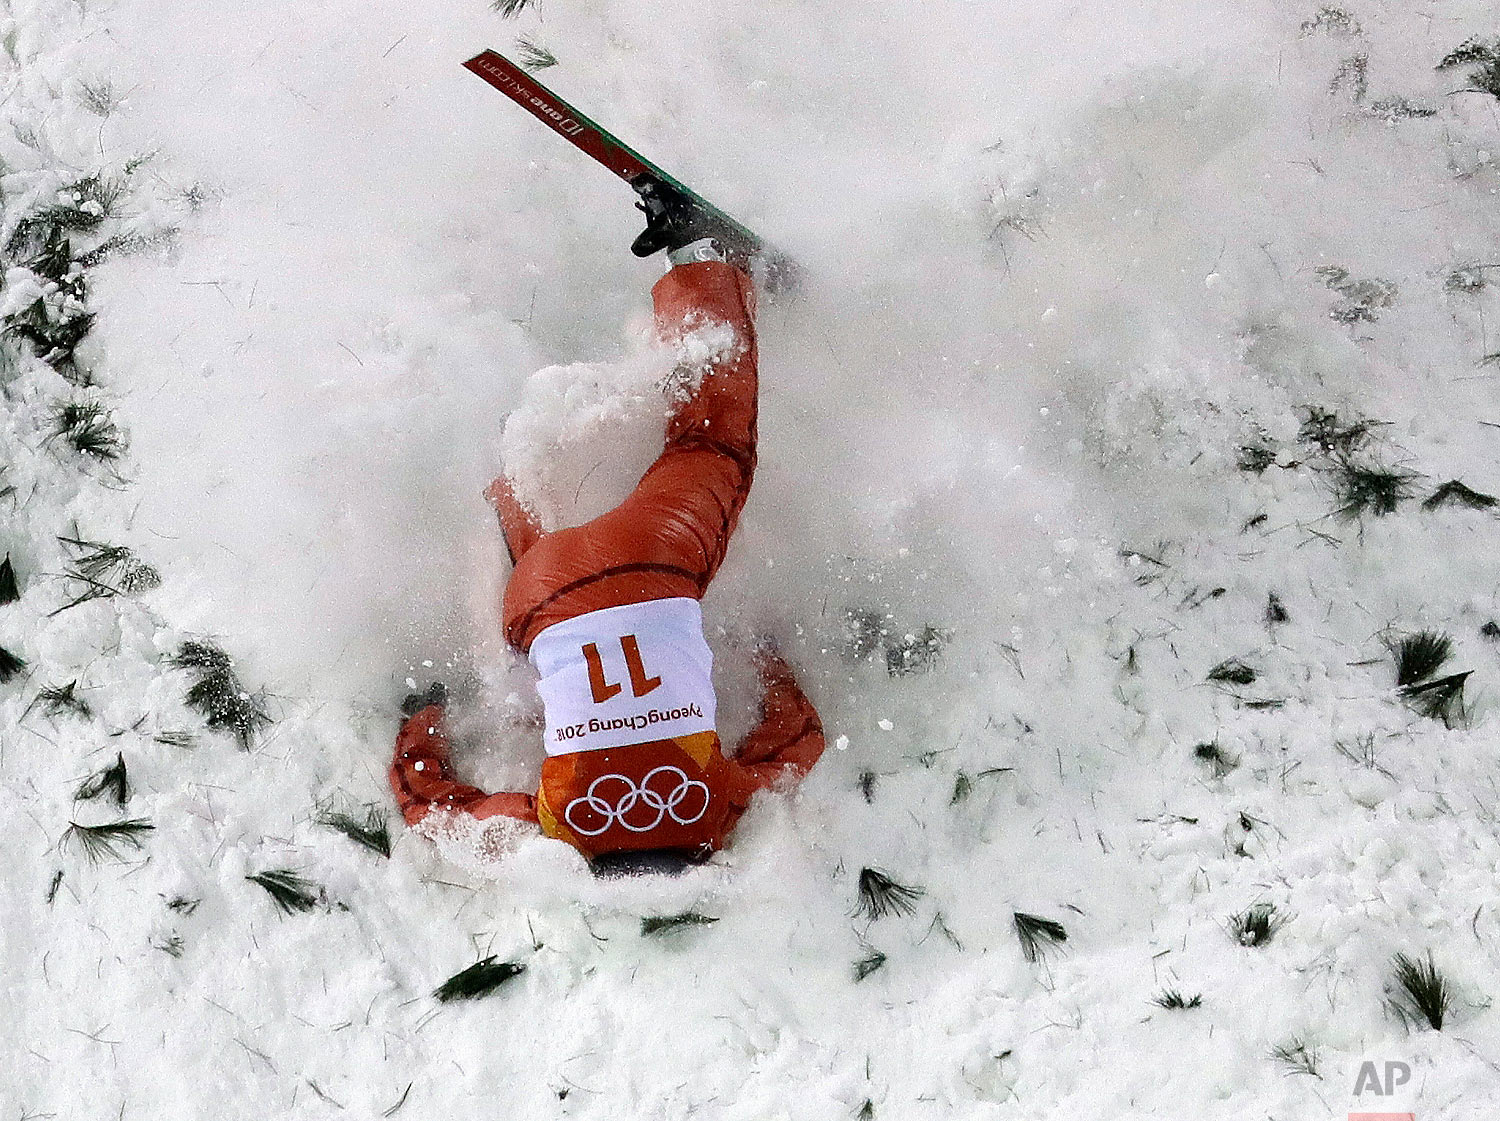 AllaTsuper, of Belarus, crashes during the women's freestyle aerial final at Phoenix Snow Park at the 2018 Winter Olympics in Pyeongchang, South Korea, Friday, Feb. 16, 2018. (AP Photo/Lee Jin-man)